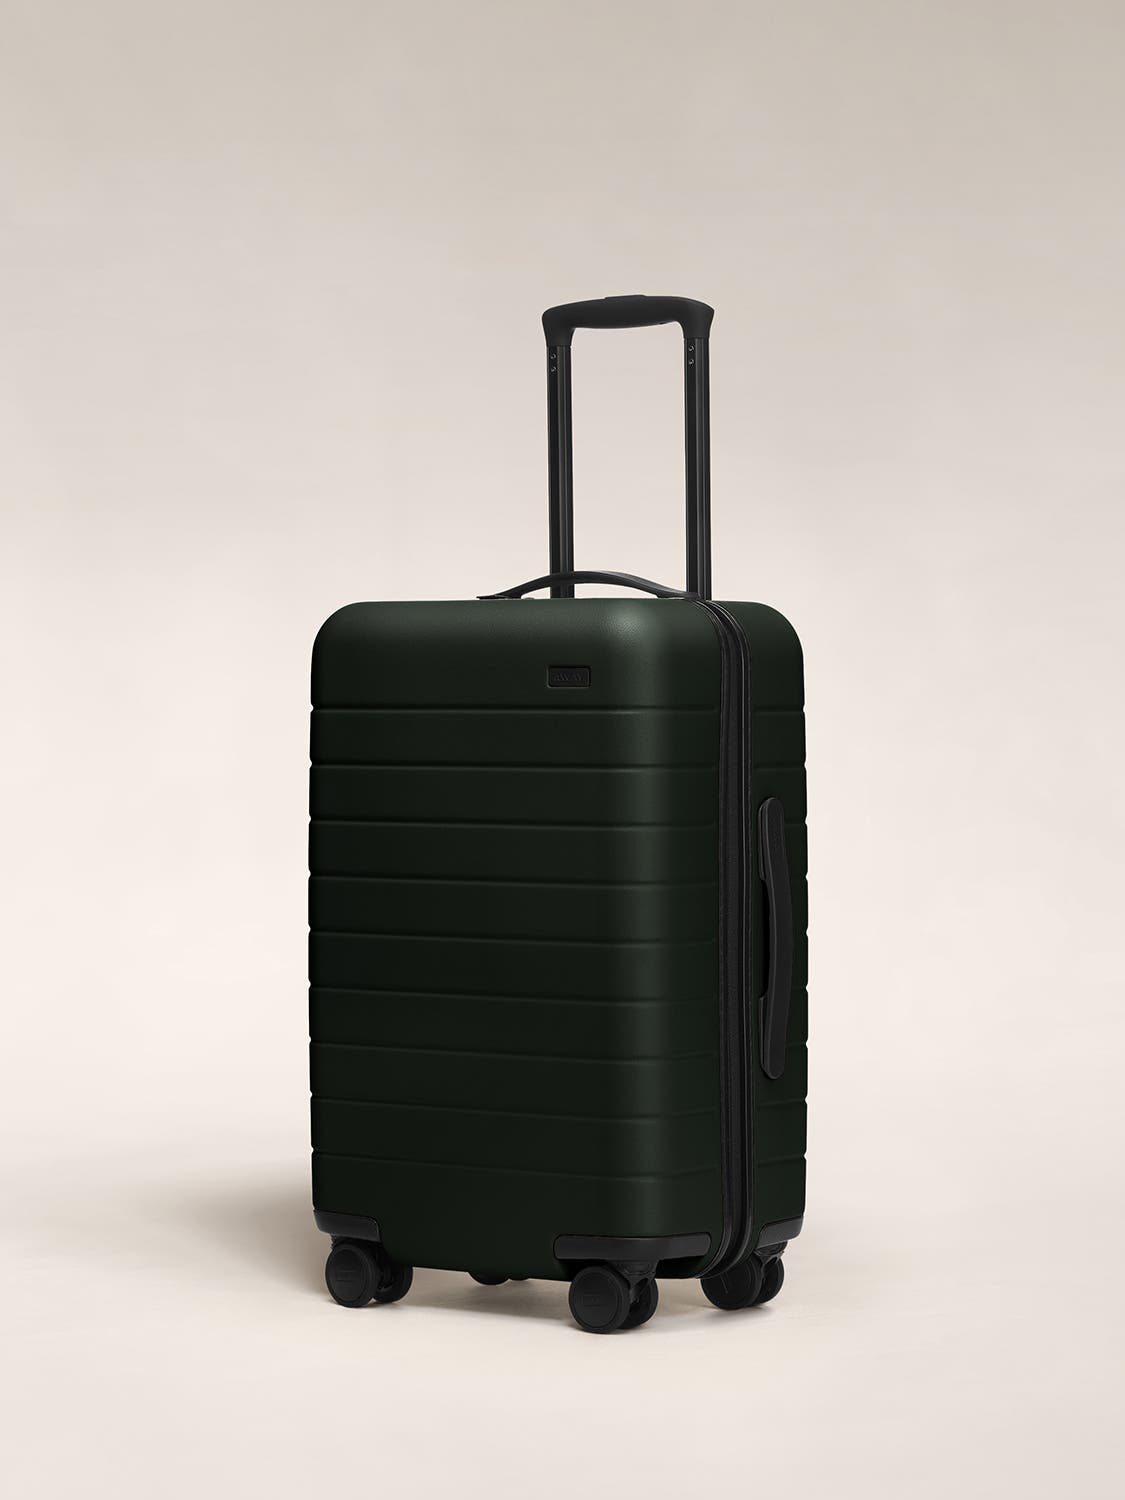 Green carry-on hardside with raised telescopic handles shown at an angle.